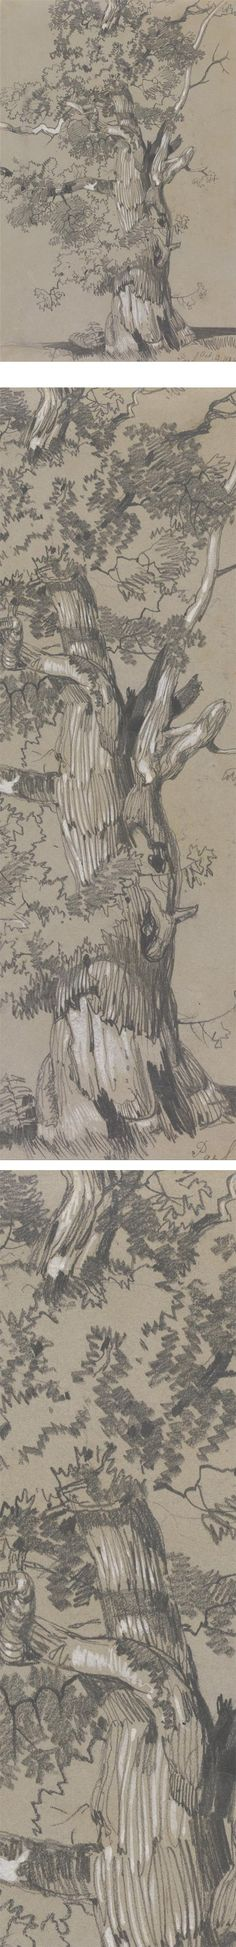 Eye Candy for Today: Edward Lear graphite drawing                                                                                                                                                                                 More